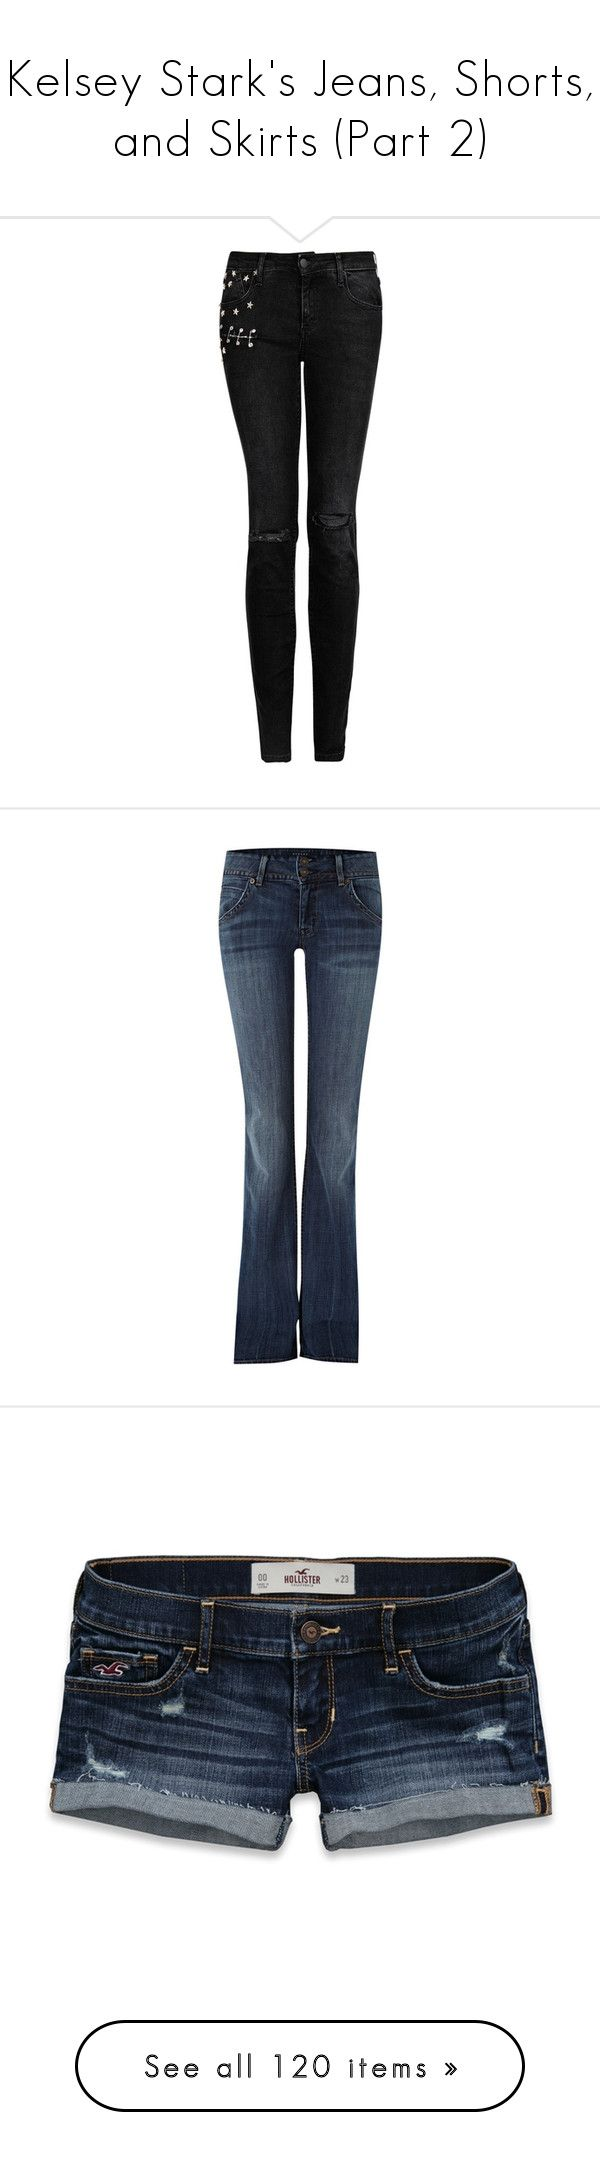 """""""Kelsey Stark's Jeans, Shorts, and Skirts (Part 2)"""" by nerdbucket ❤ liked on Polyvore featuring jeans, pants, bottoms, calças, pantalones, ripped skinny jeans, destroyed skinny jeans, big-star skinny jeans, torn skinny jeans and studded skinny jeans"""